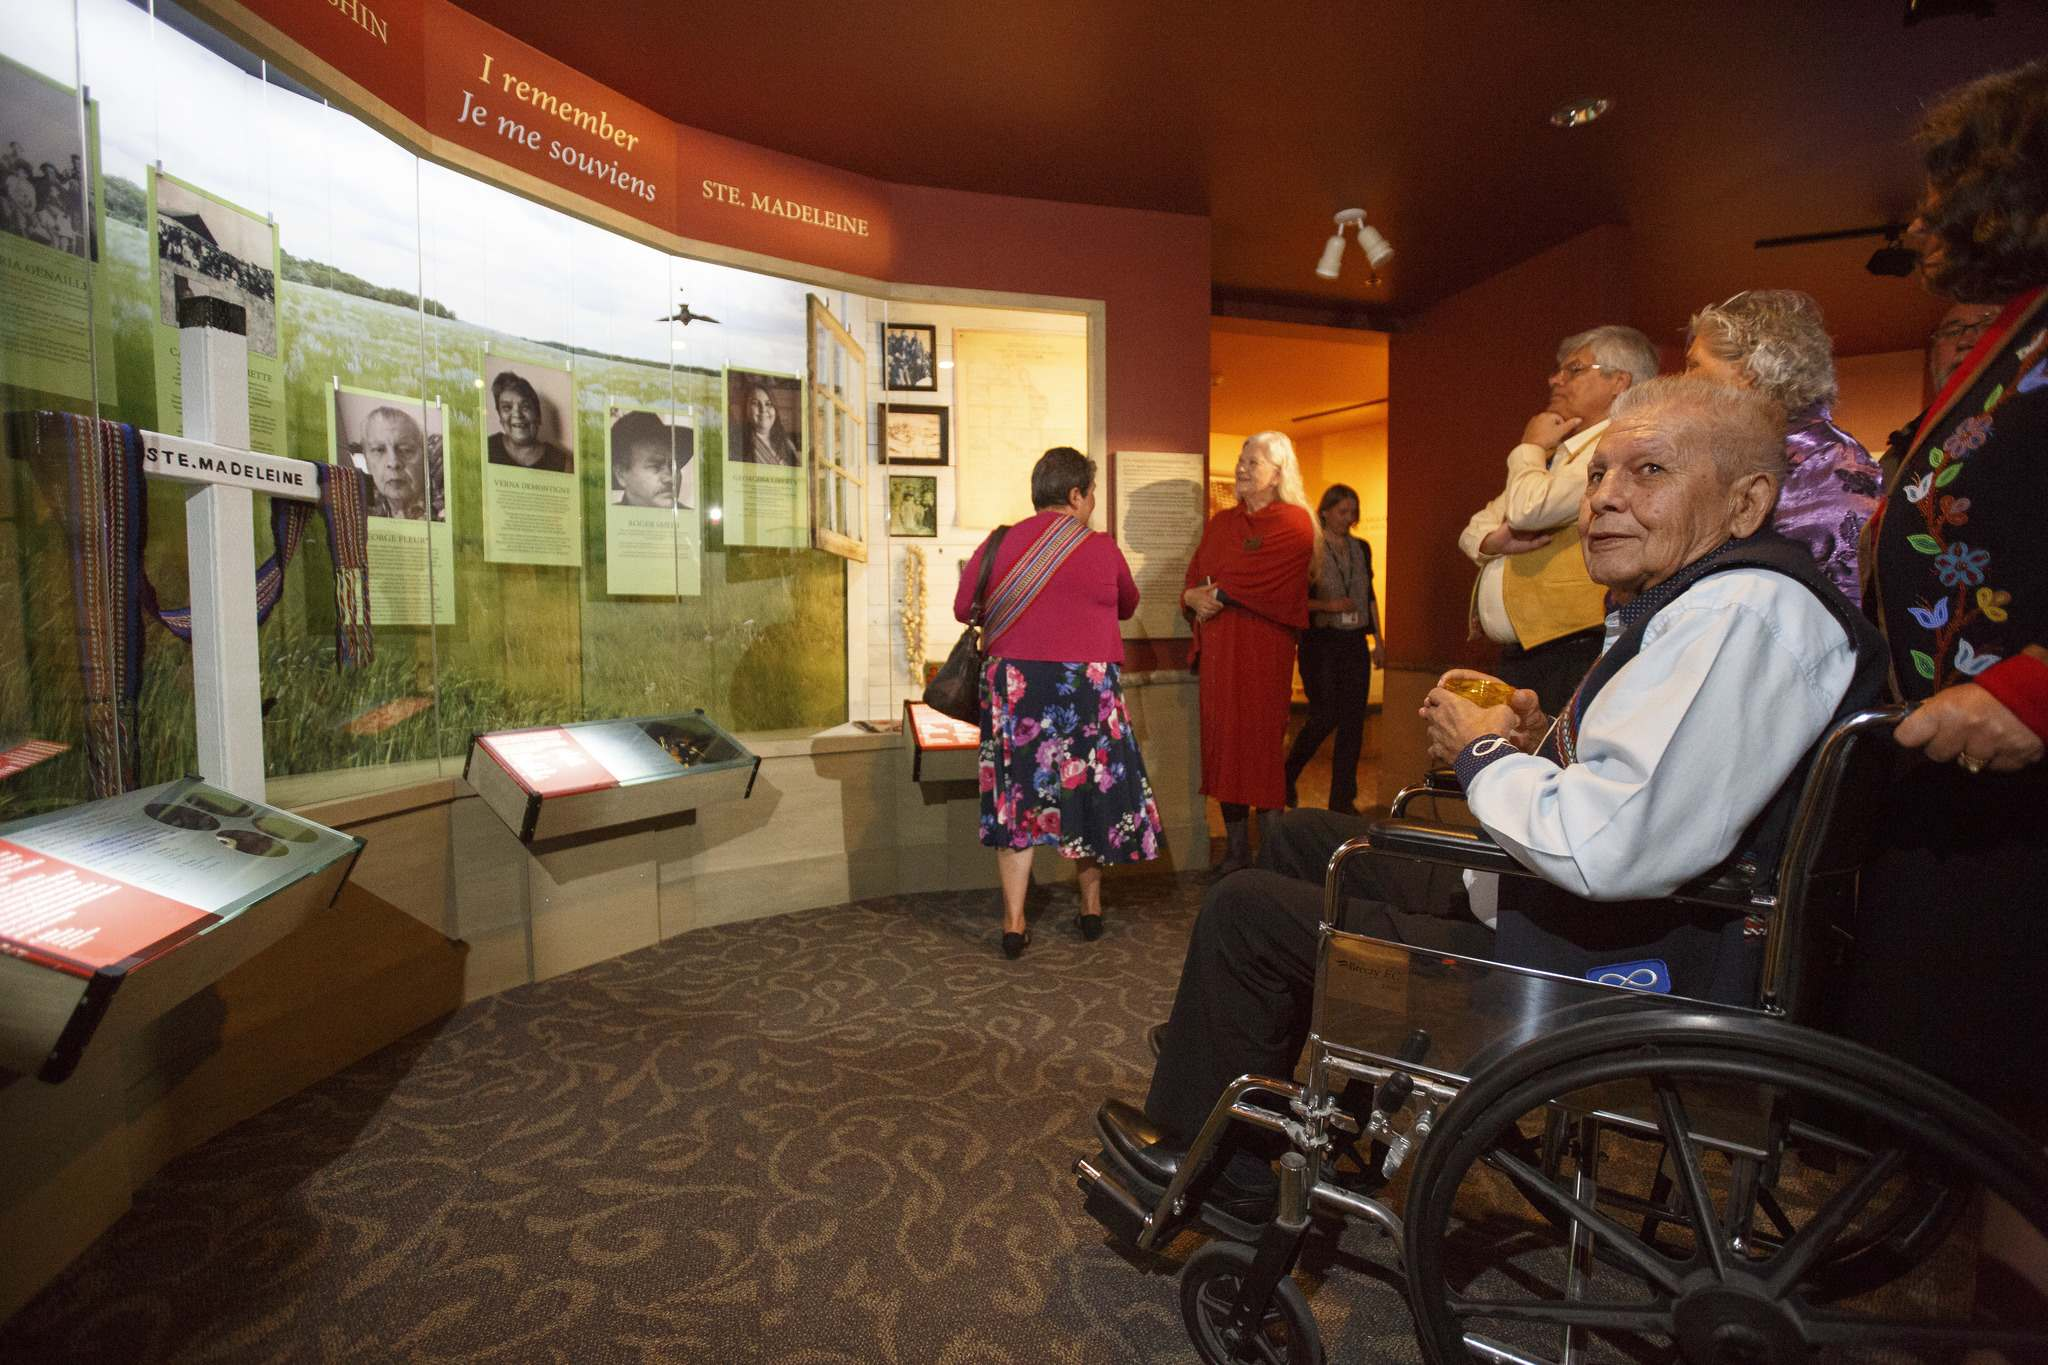 MIKE DEAL / WINNIPEG FREE PRESS</p><p>Elder George Fleury, Survivor, during the official opening of the new exhibit at the Manitoba Museum devoted to the tragic story of Ste. Madeleine – depicting the displacement of hundreds of Métis people in Manitoba.</p>